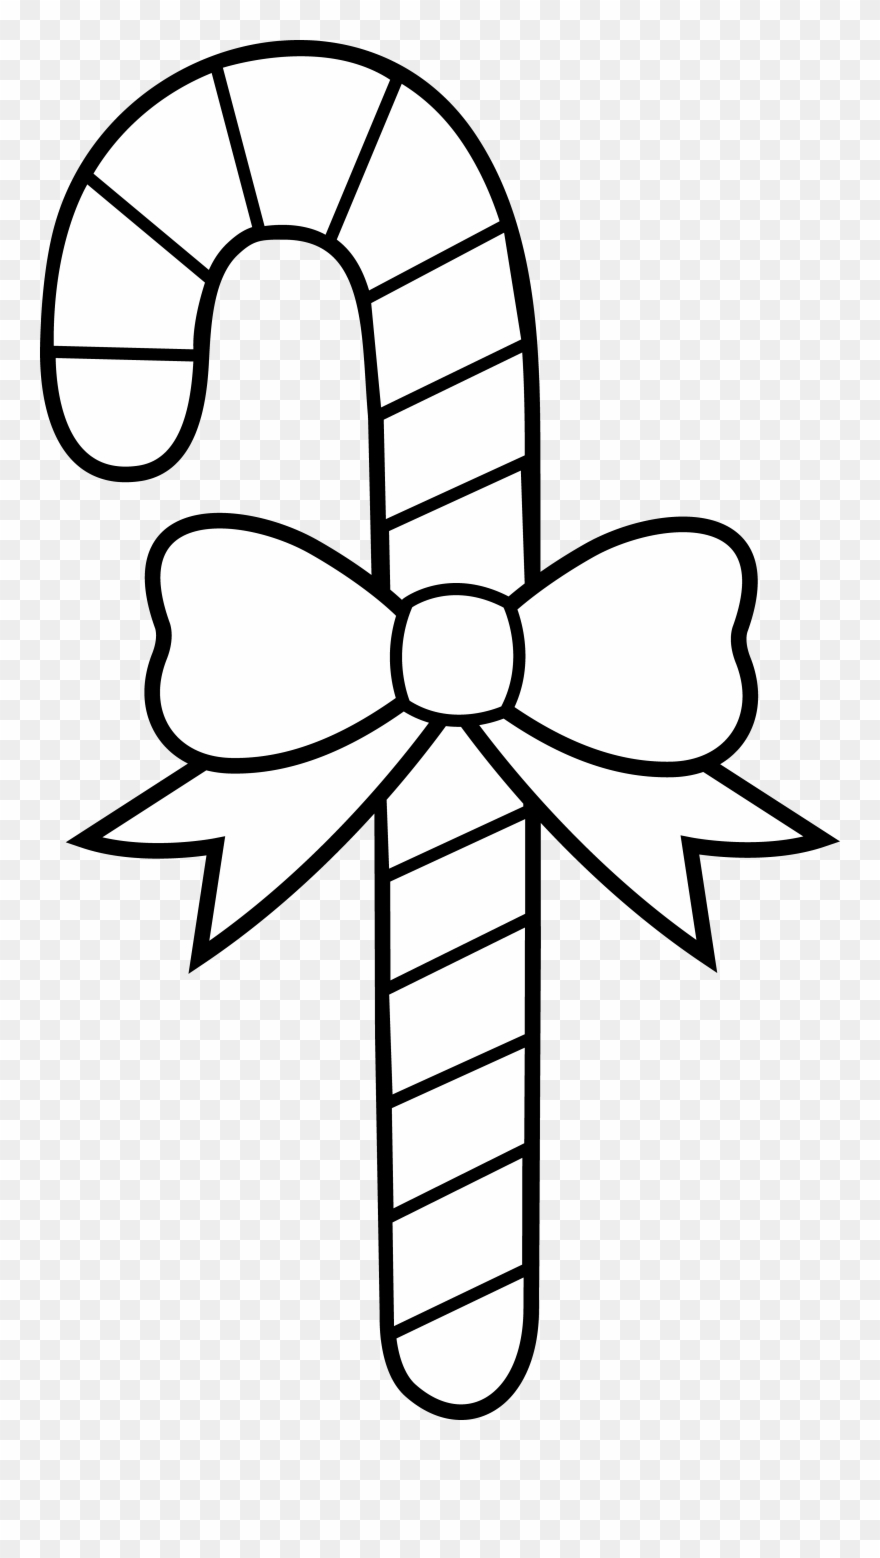 Candy cane black and white clipart picture download Candy Cane Coloring Pages Christmas Candy Cane Coloring - Candy Cane ... picture download